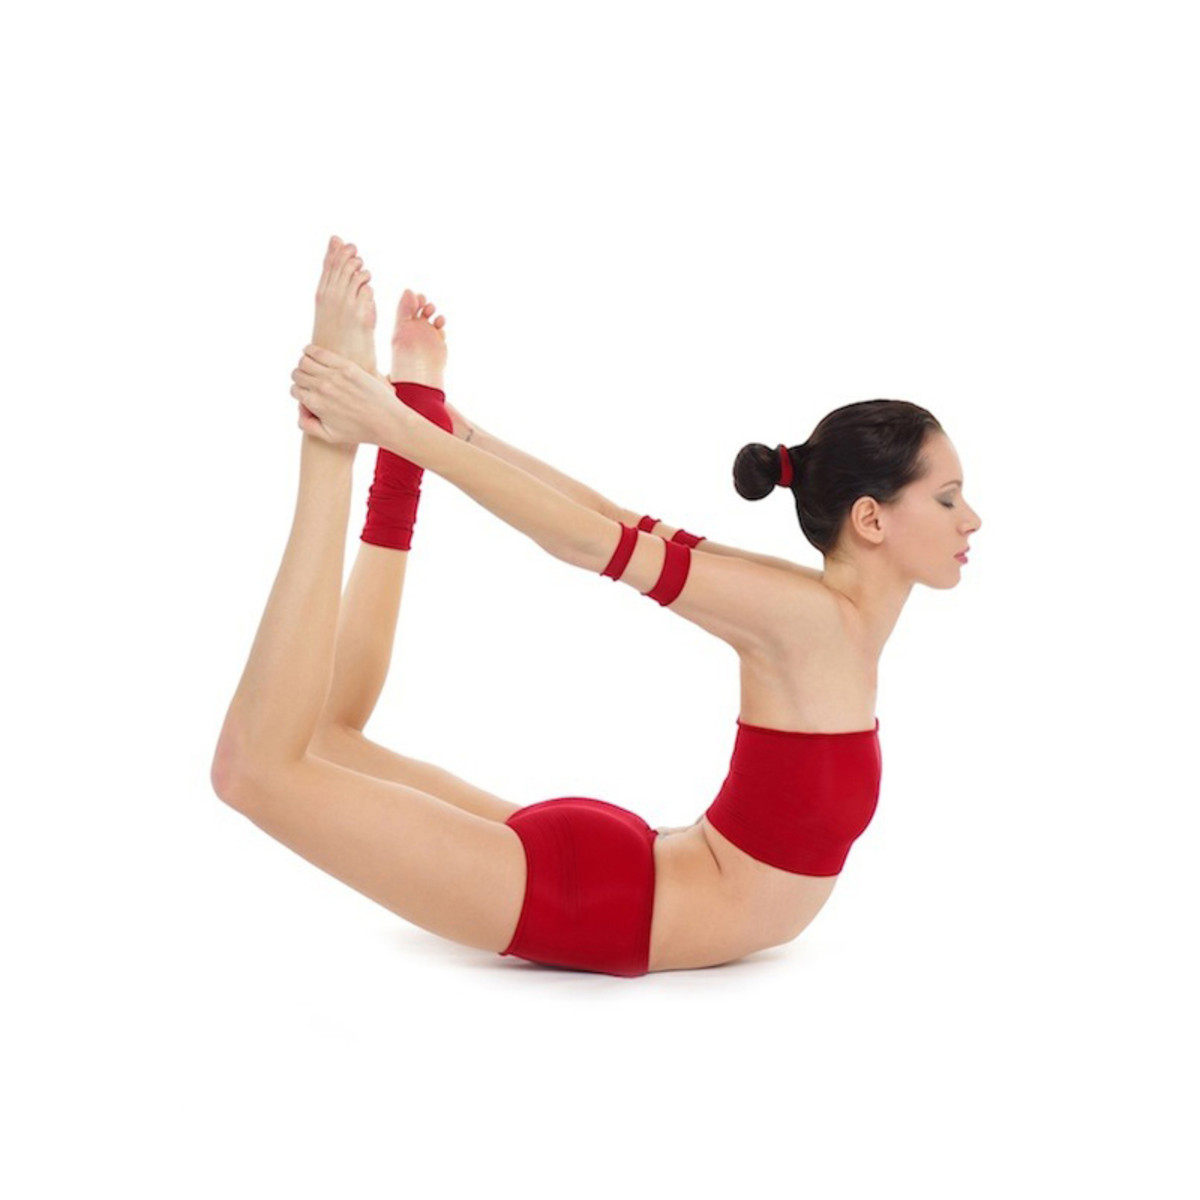 Bow Pose, Dhanurasana for More Energy